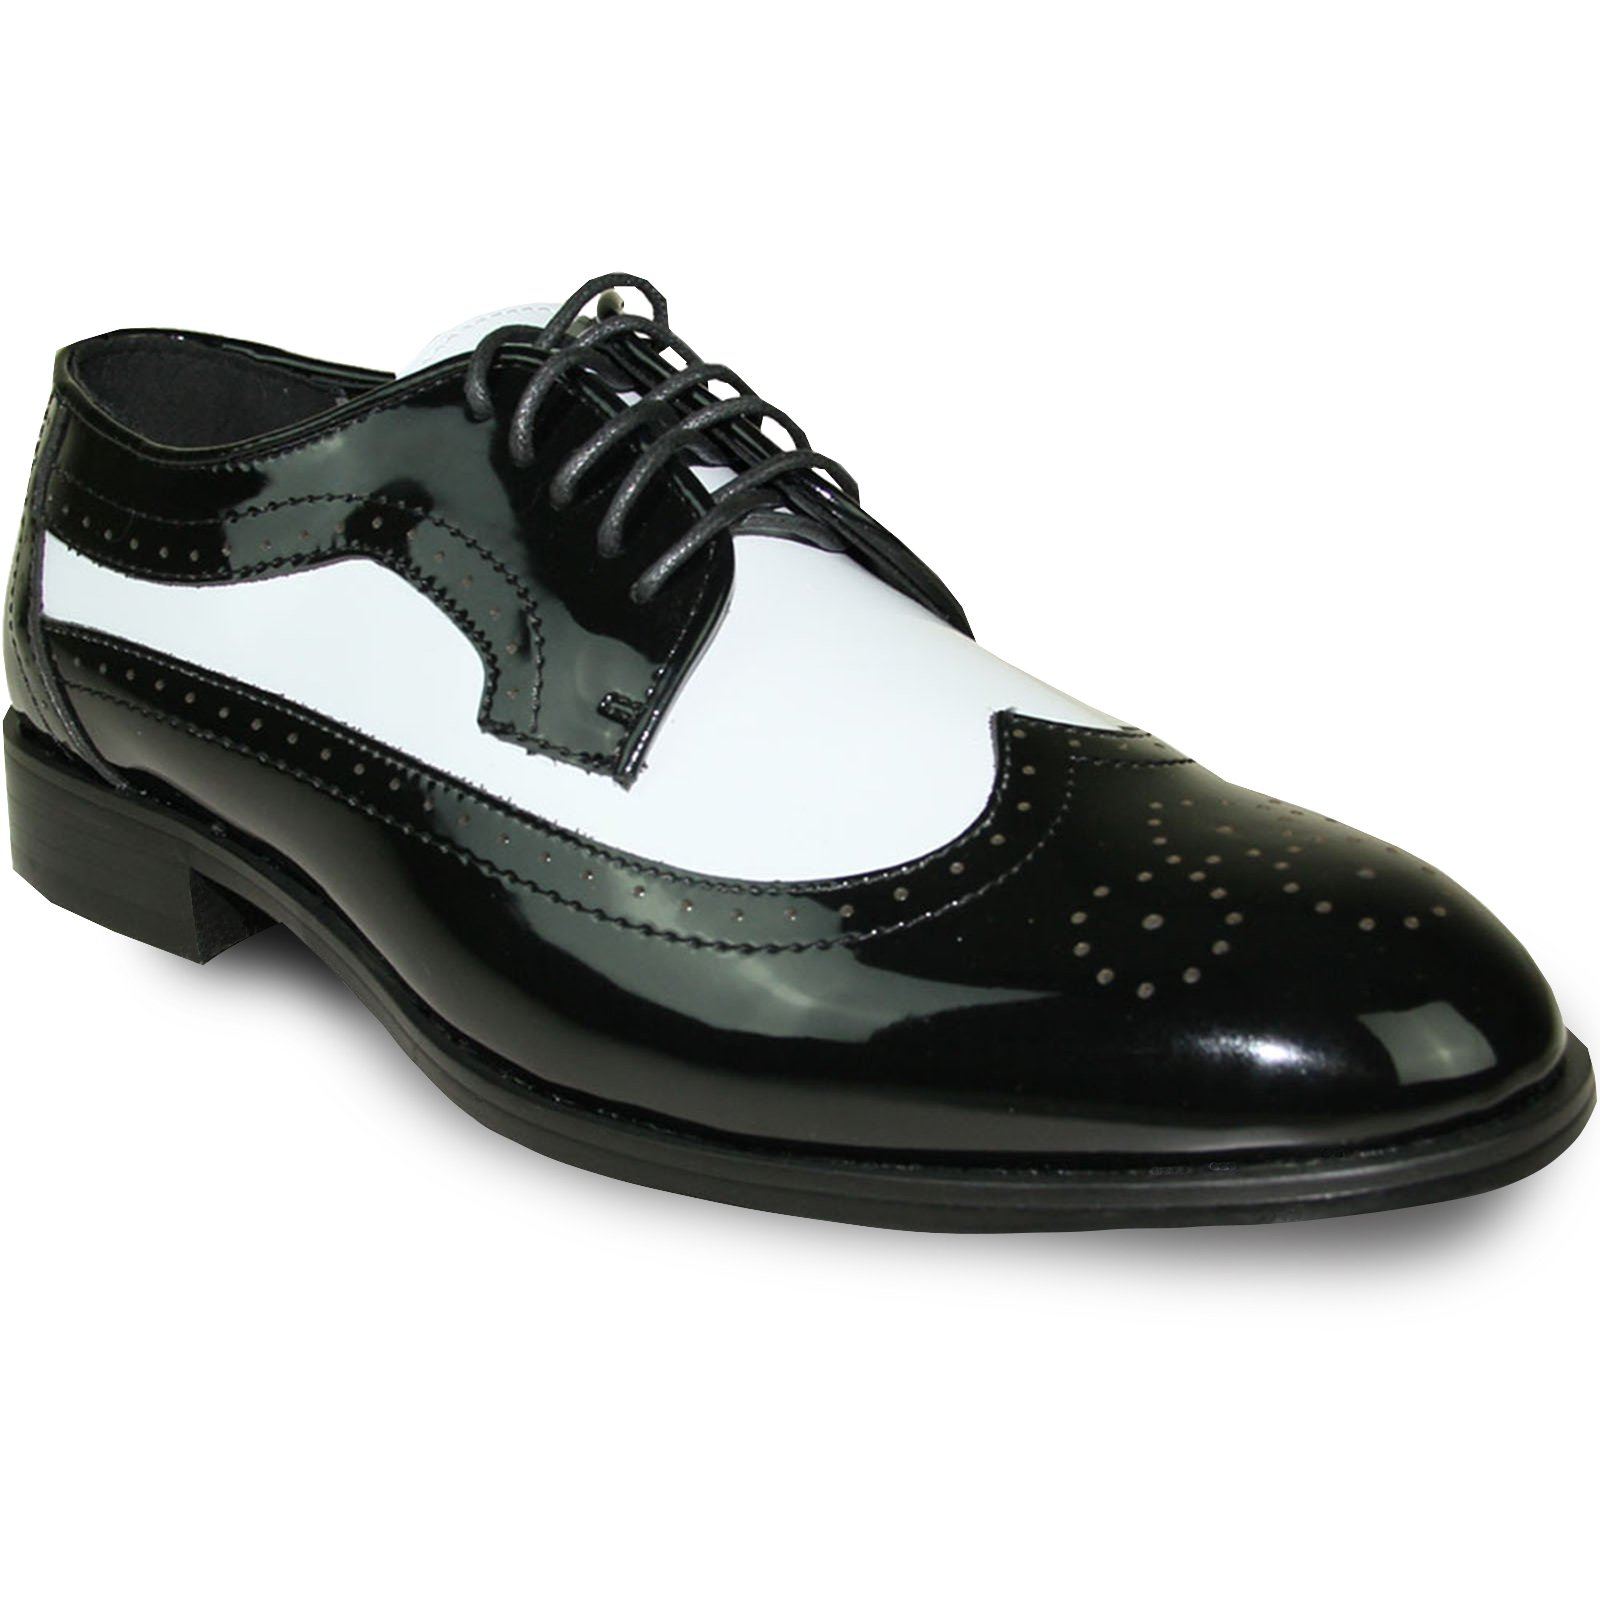 JEAN YVES Dress Shoe JY03 Wing Tip Two-Tone Tuxedo for Wedding, Prom and Formal Event Black&White 17M by Jean Yves